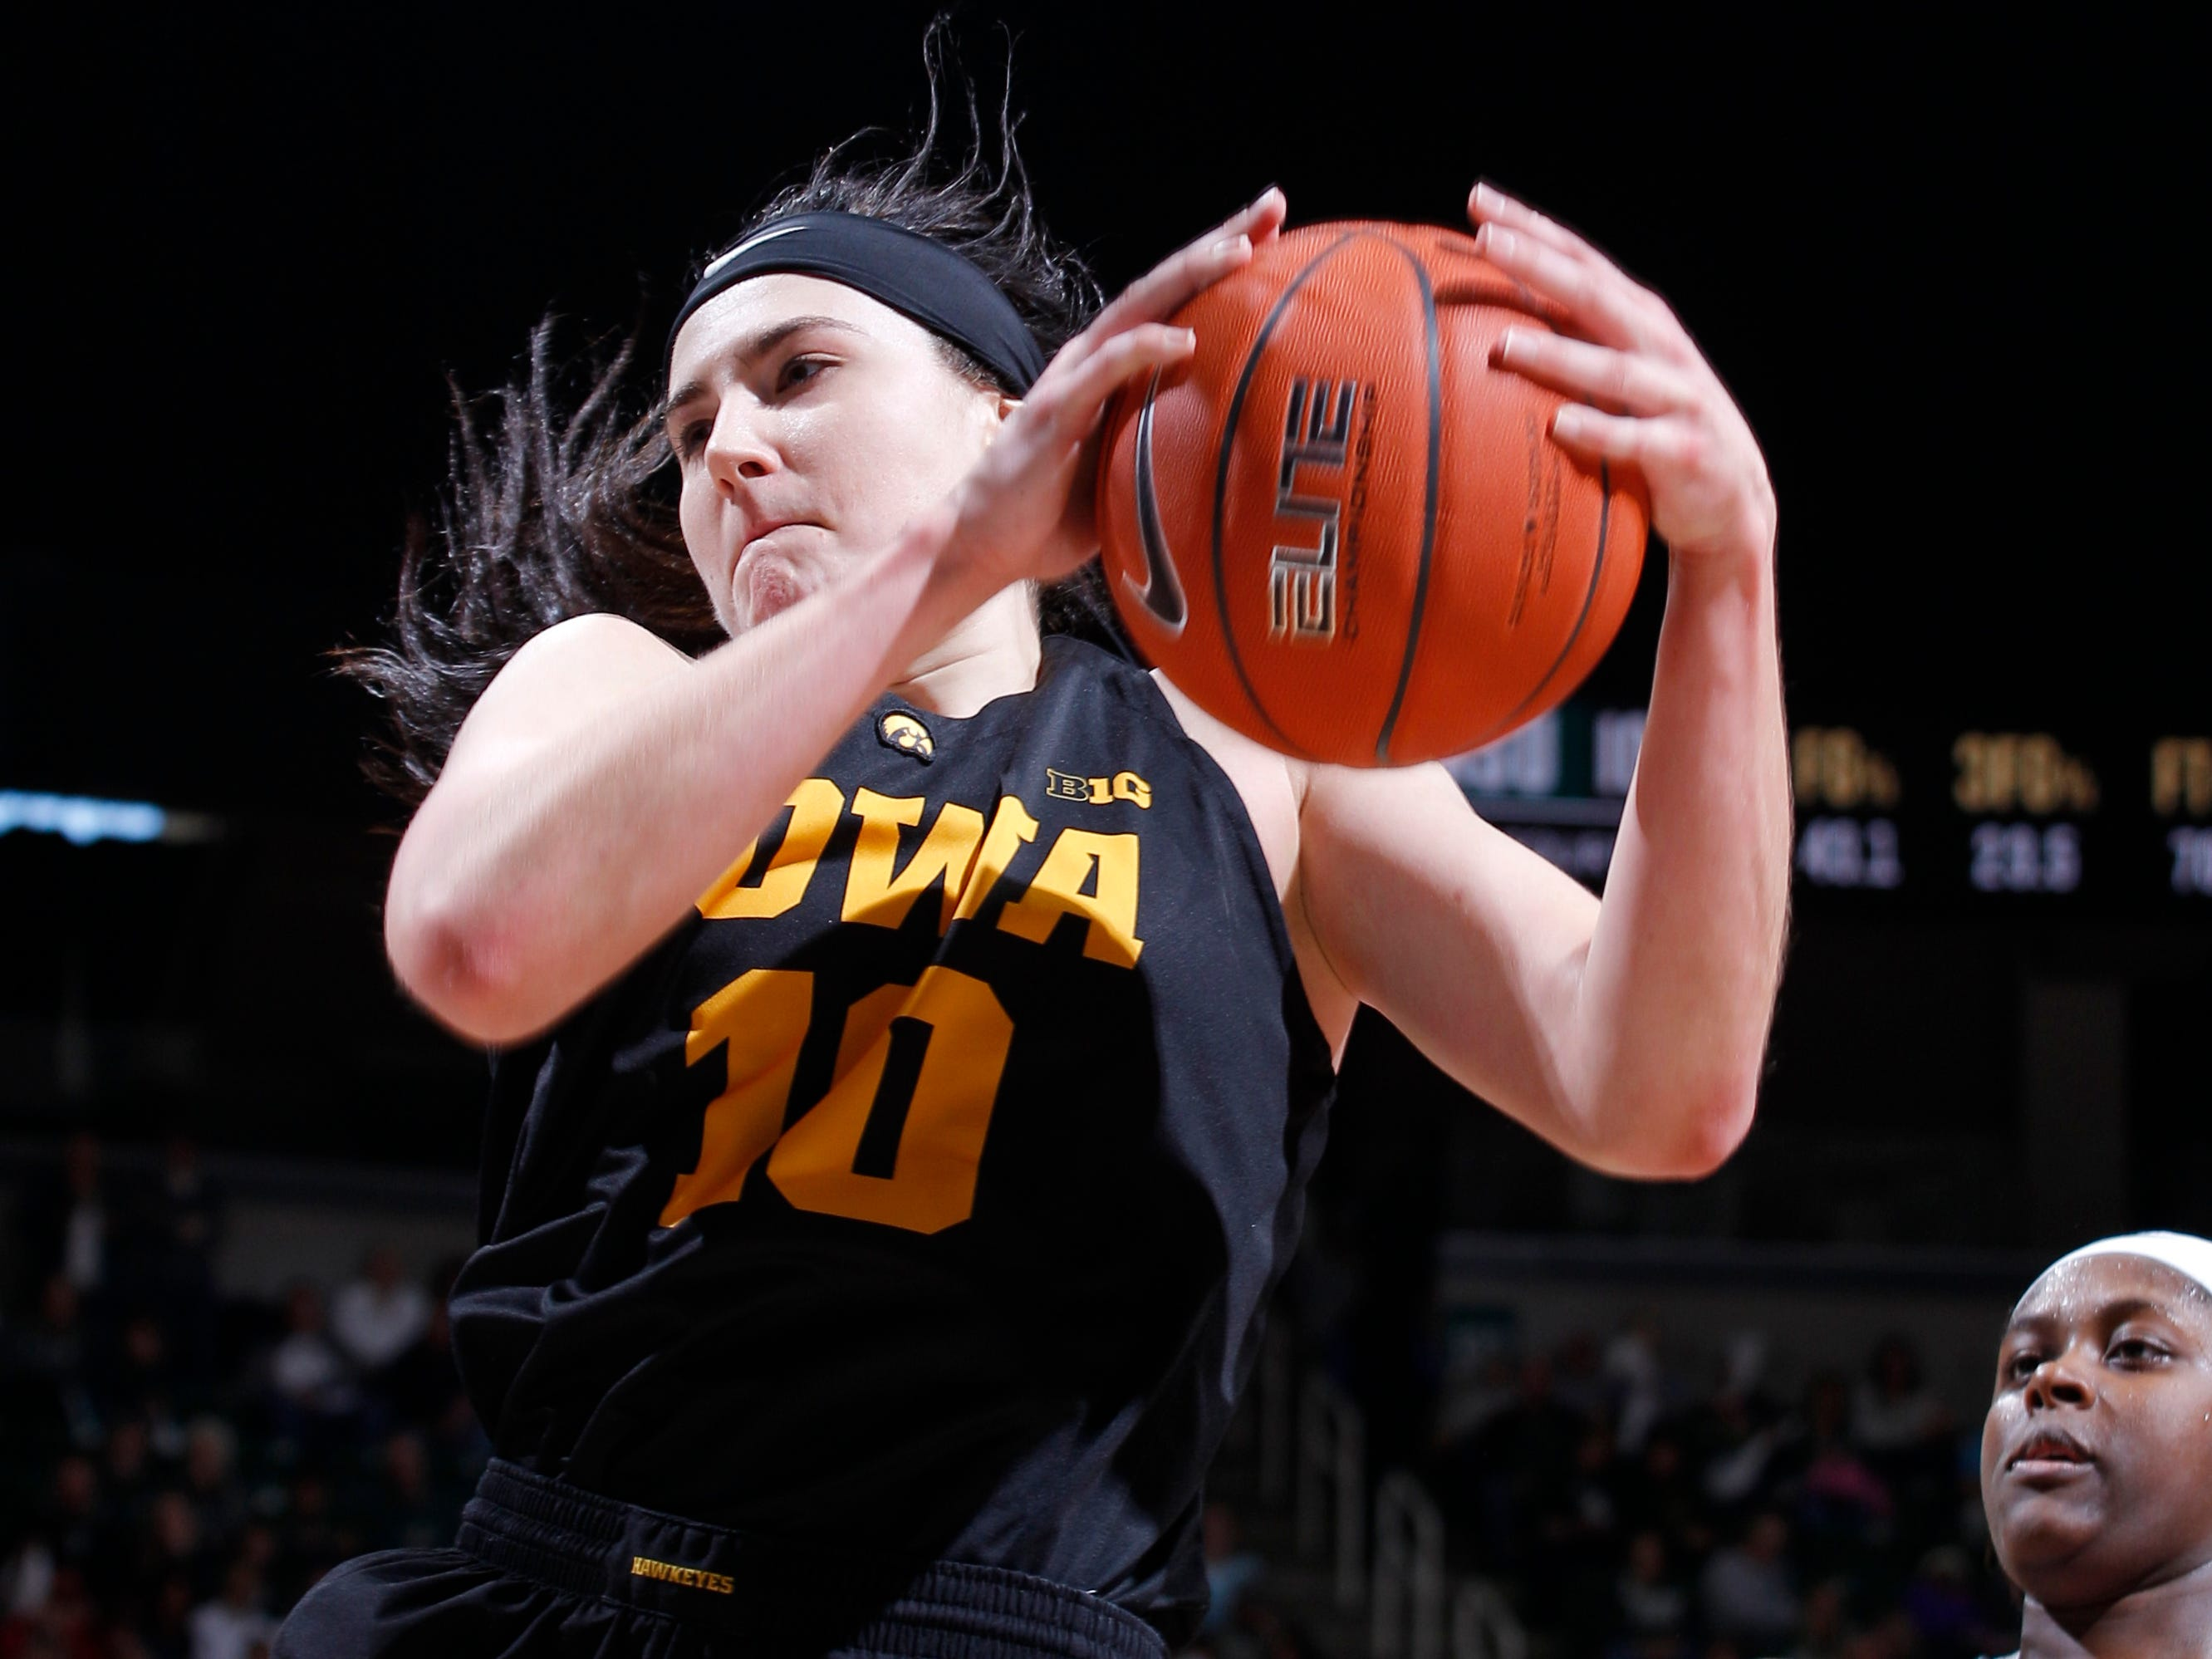 Iowa's Megan Gustafson (10) pulls down a rebound against Michigan State's Nia Hollie during an NCAA college basketball game, Sunday, Dec. 30, 2018, in East Lansing, Mich. Michigan State won 84-70. (AP Photo/Al Goldis)